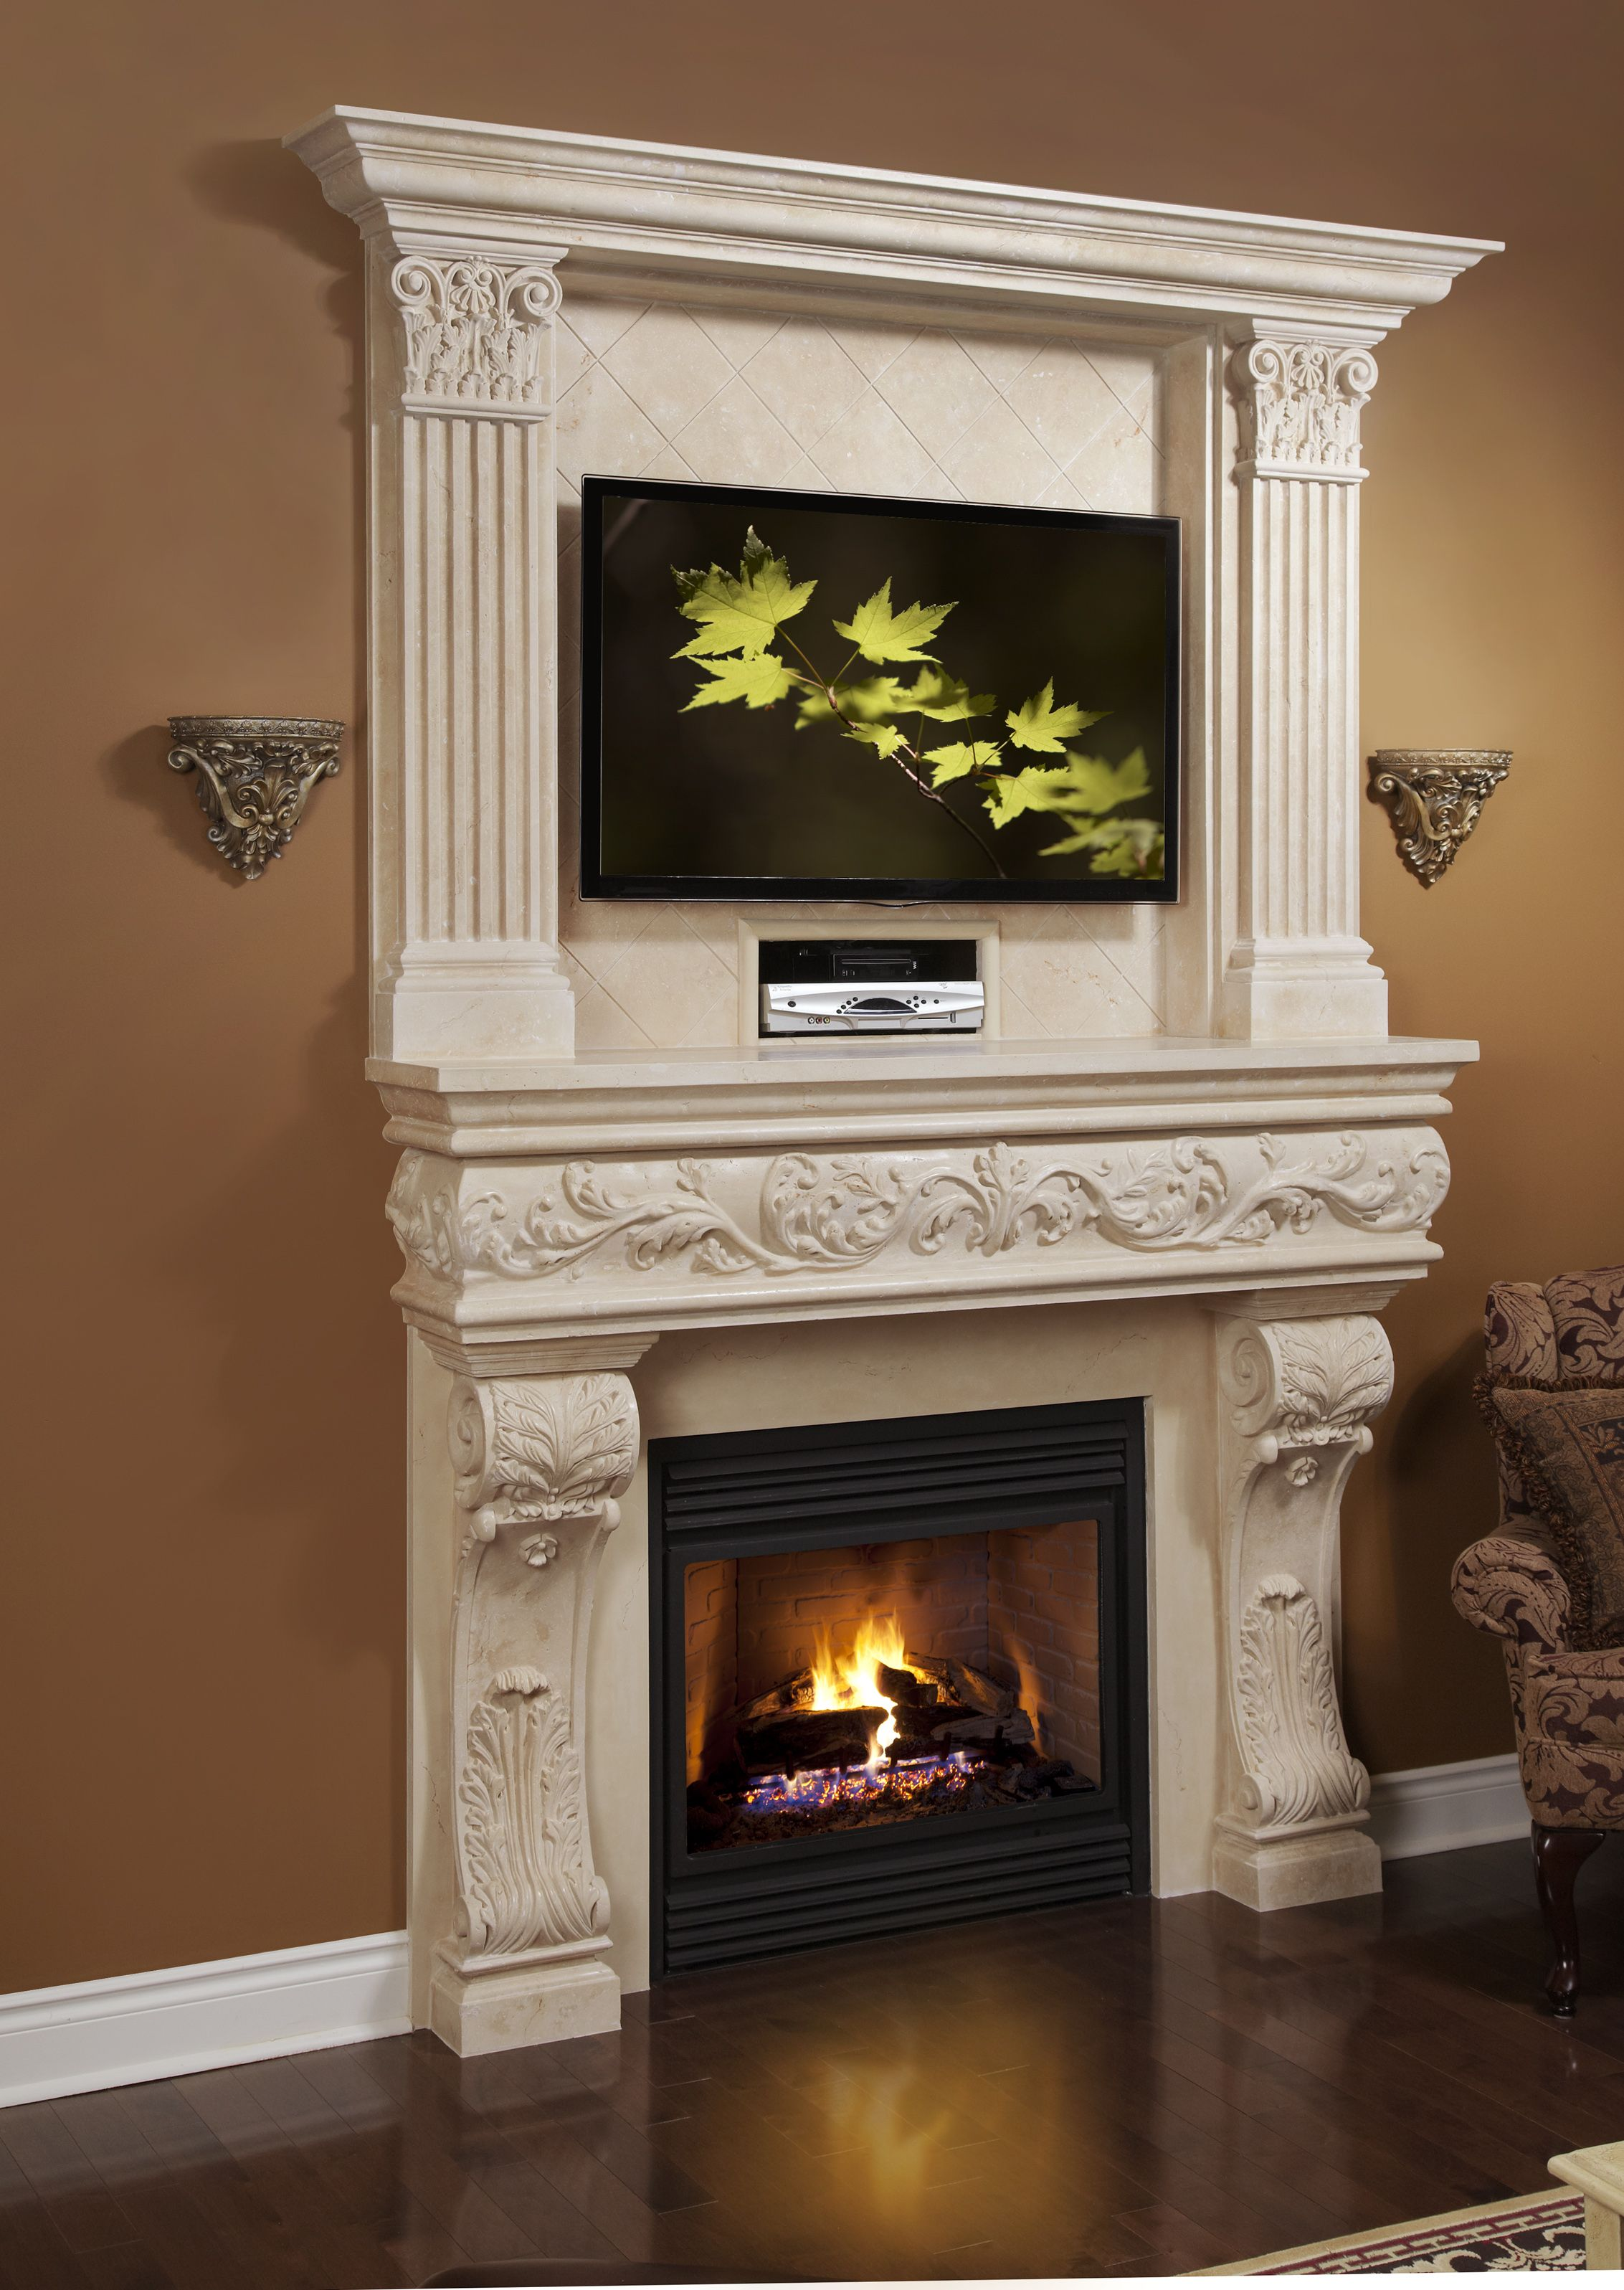 Genial Custom Stone Mantel And Overmantel With TV And Media